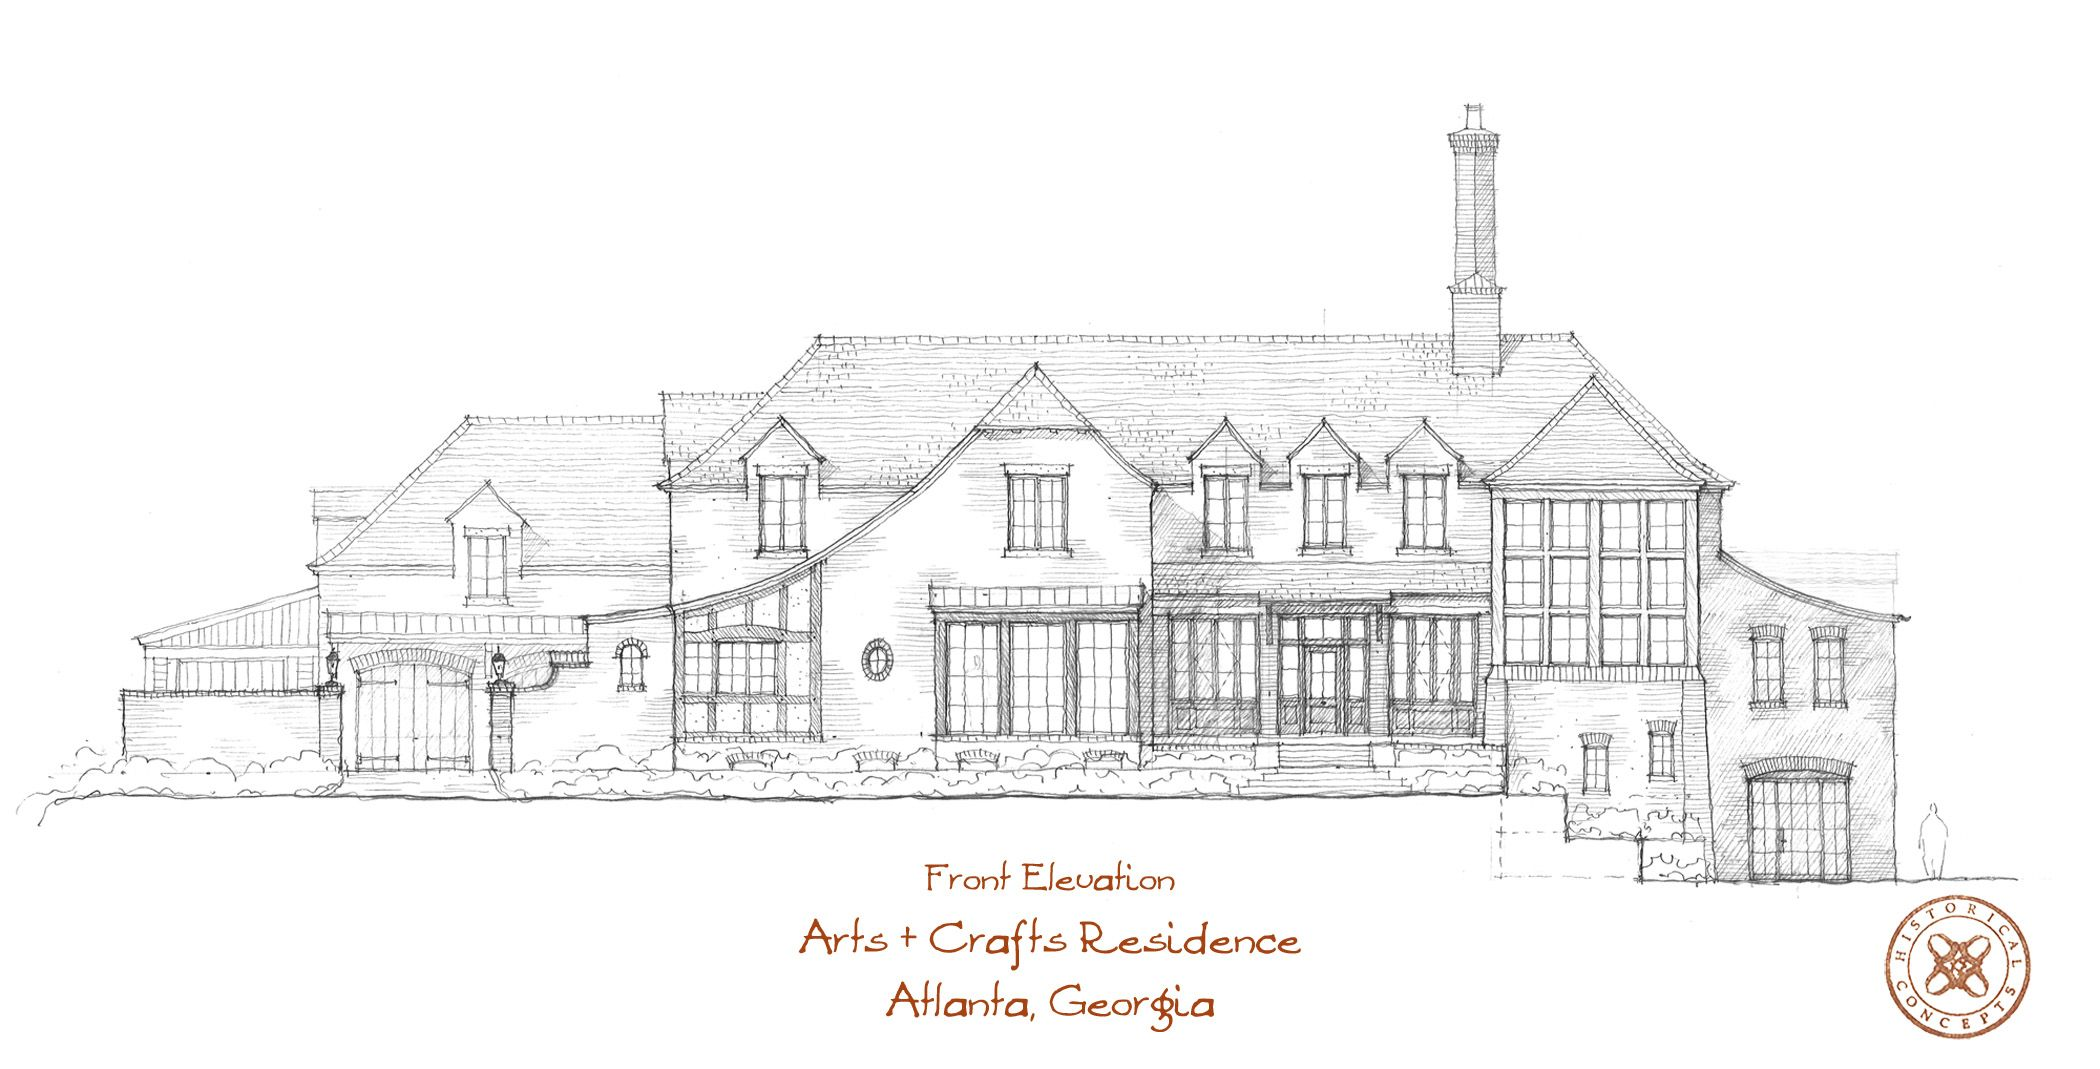 A hand sketch of the front elevation of an Arts & Crafts style